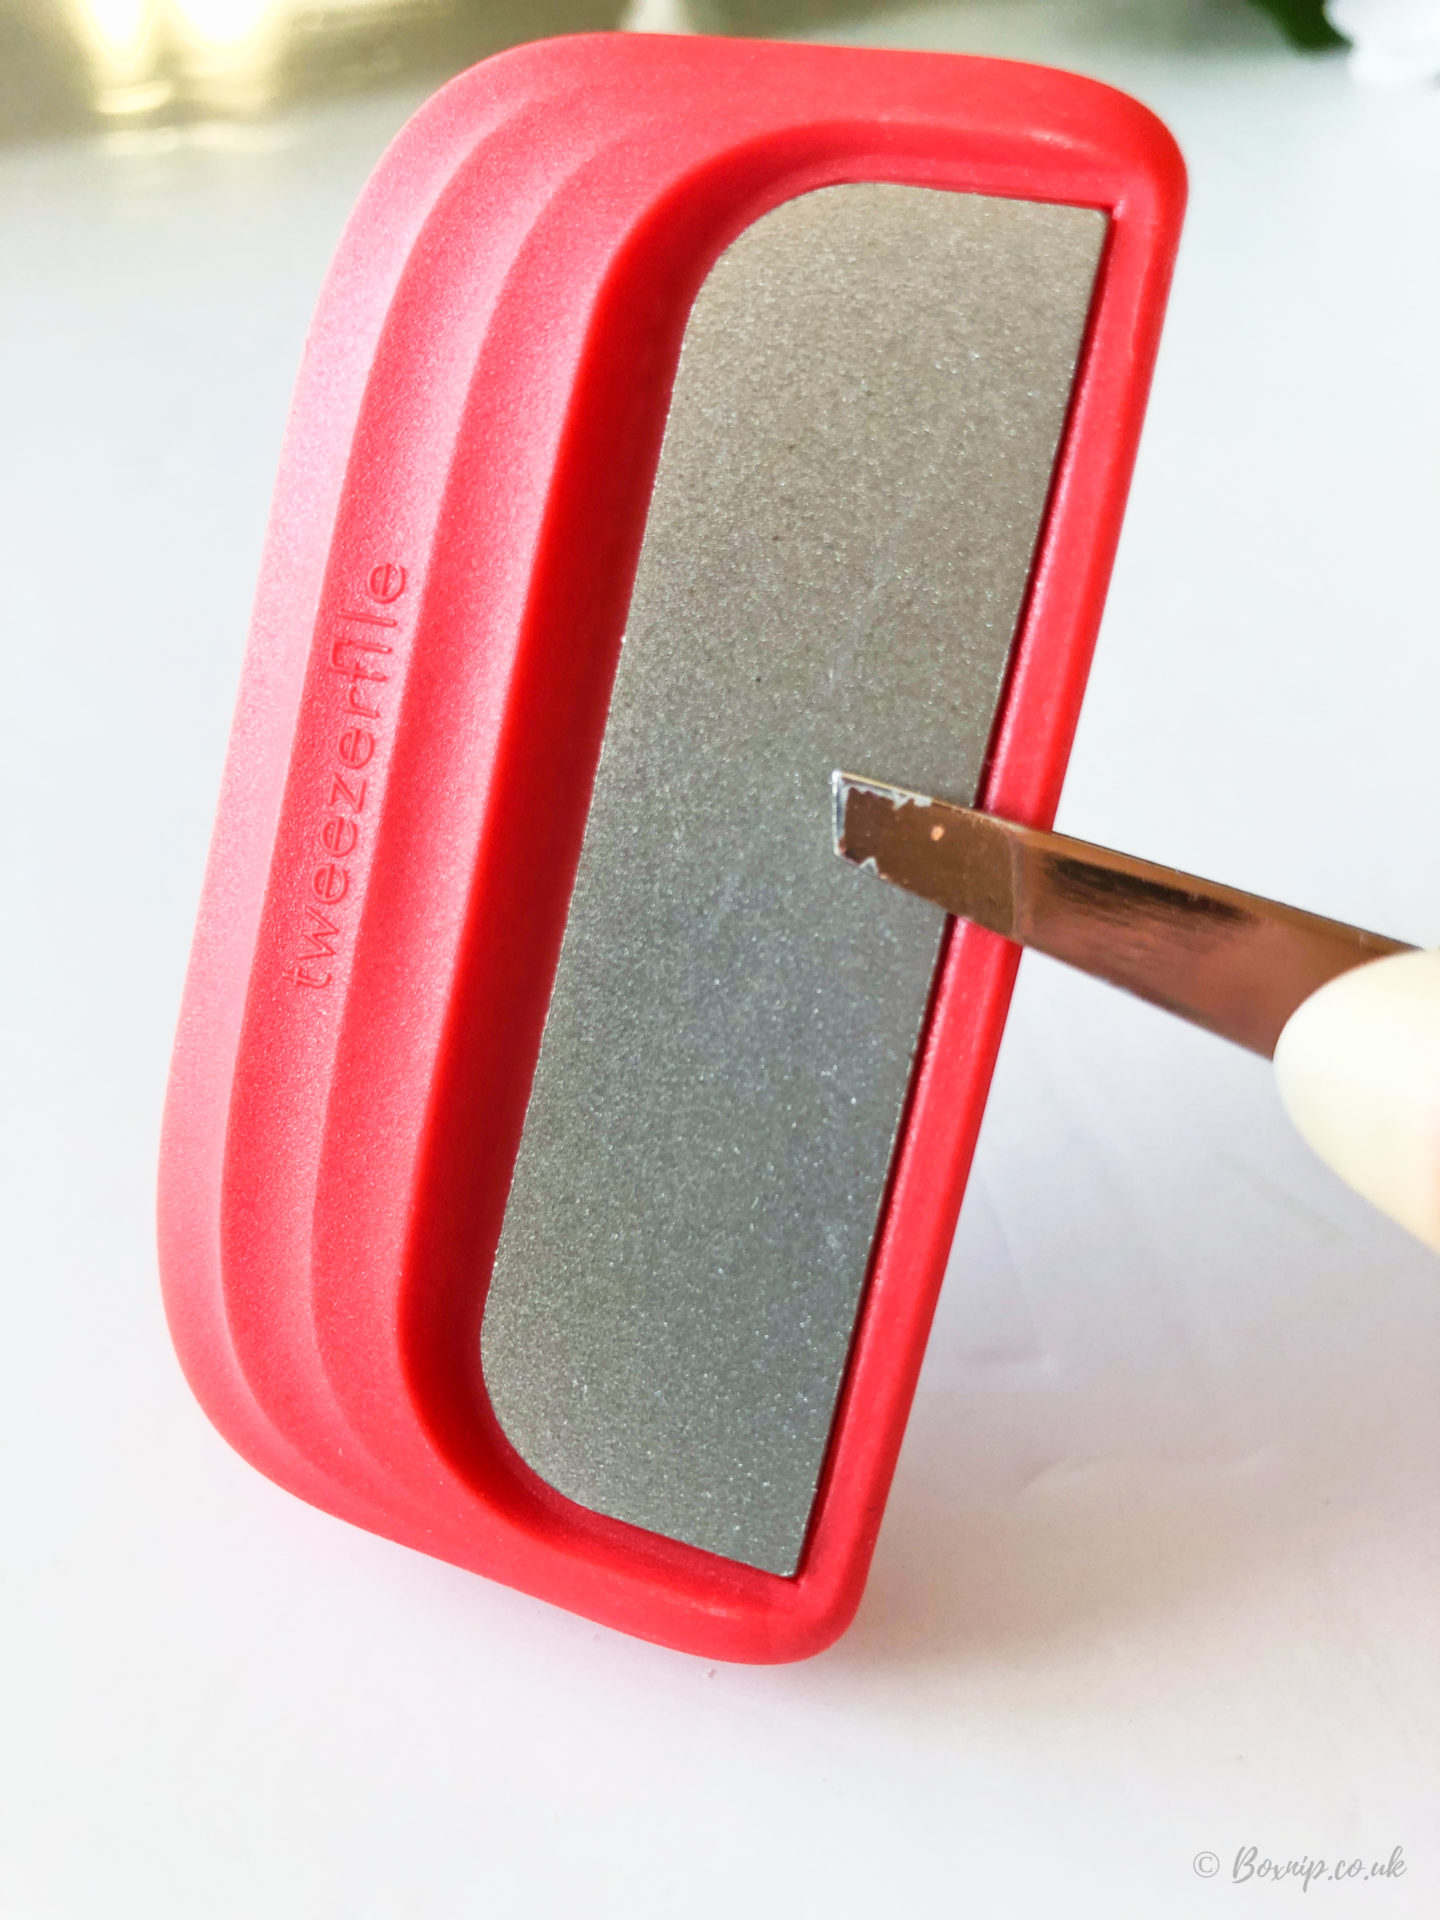 Tweezerfile - sharpener for tweezers